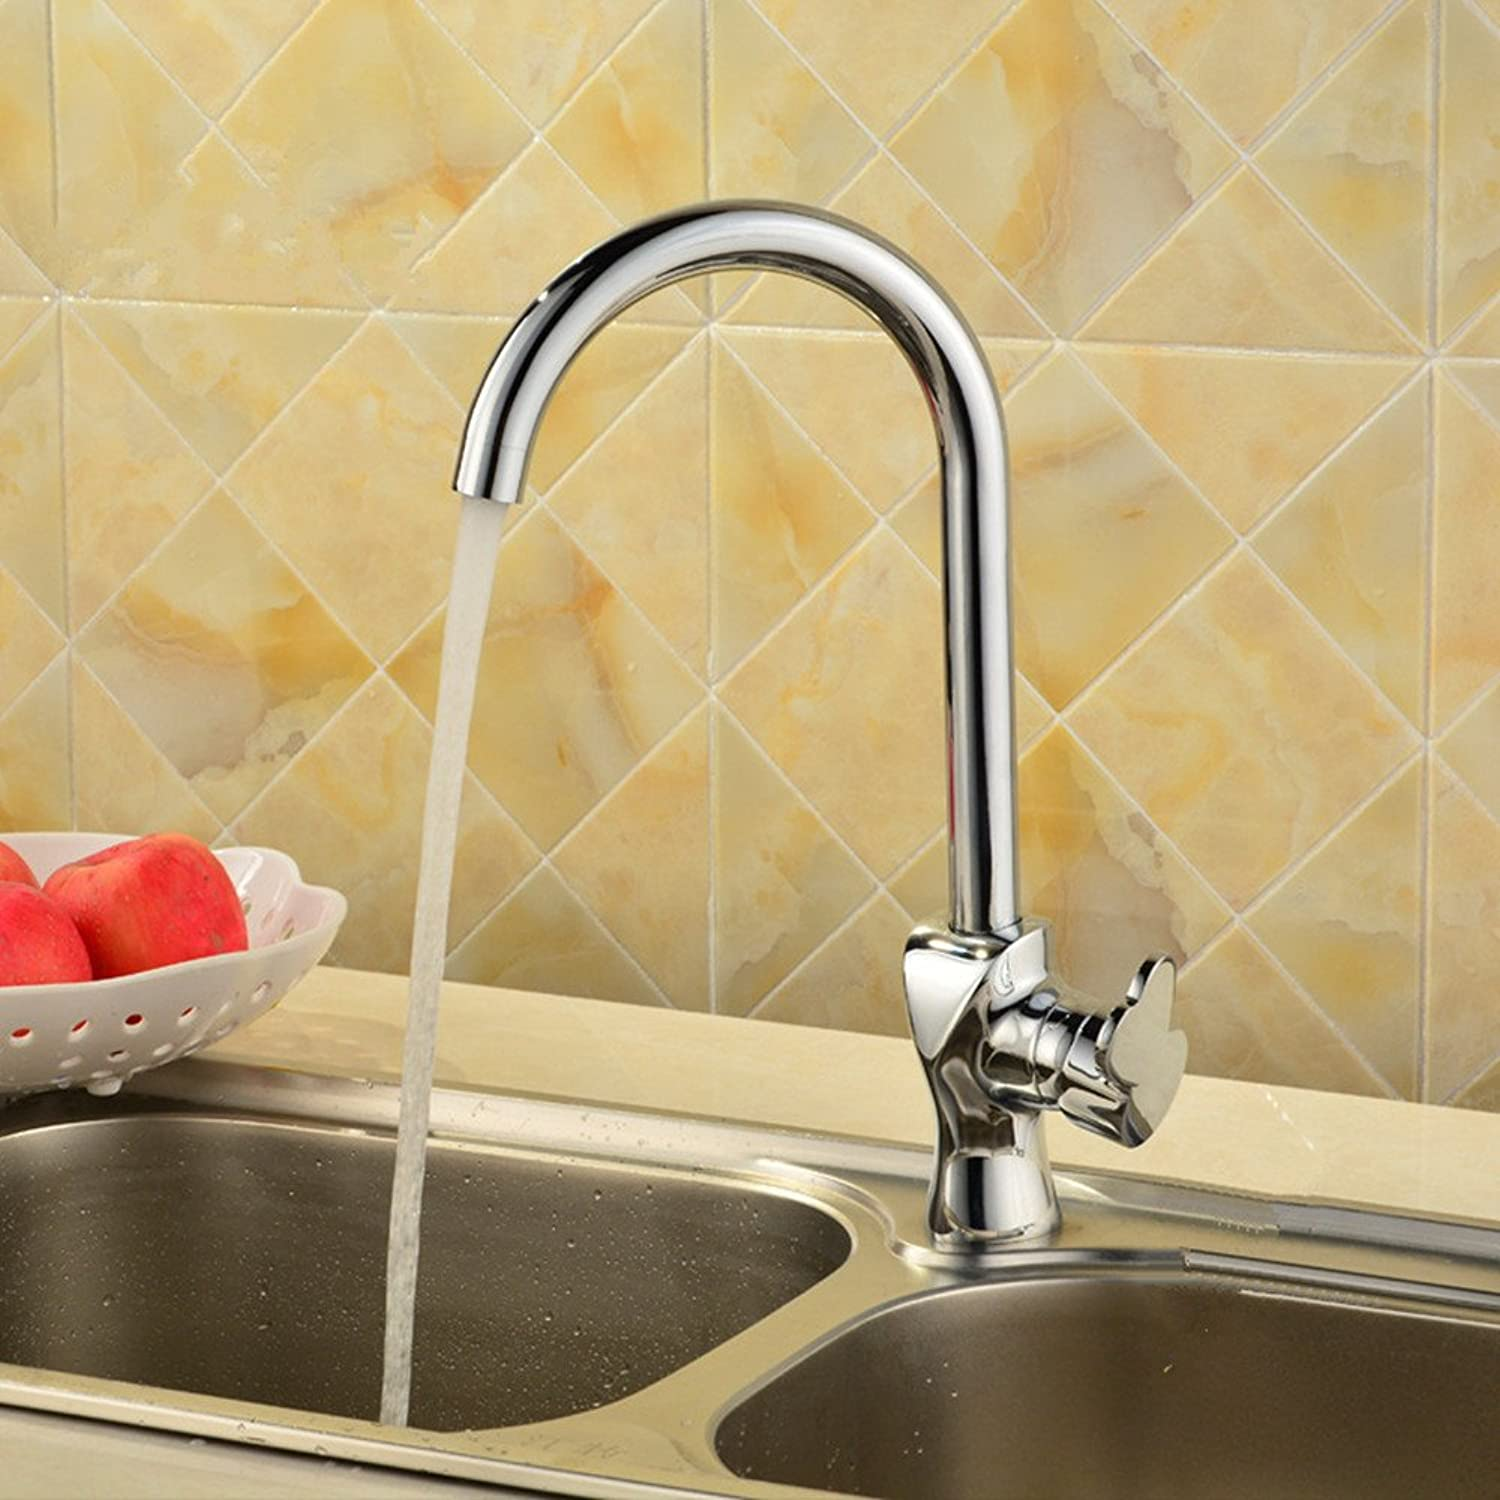 Single hole faucet brass kitchen sink faucet and cold water faucet kitchen Mixer Taps sink faucet single hole Faucet